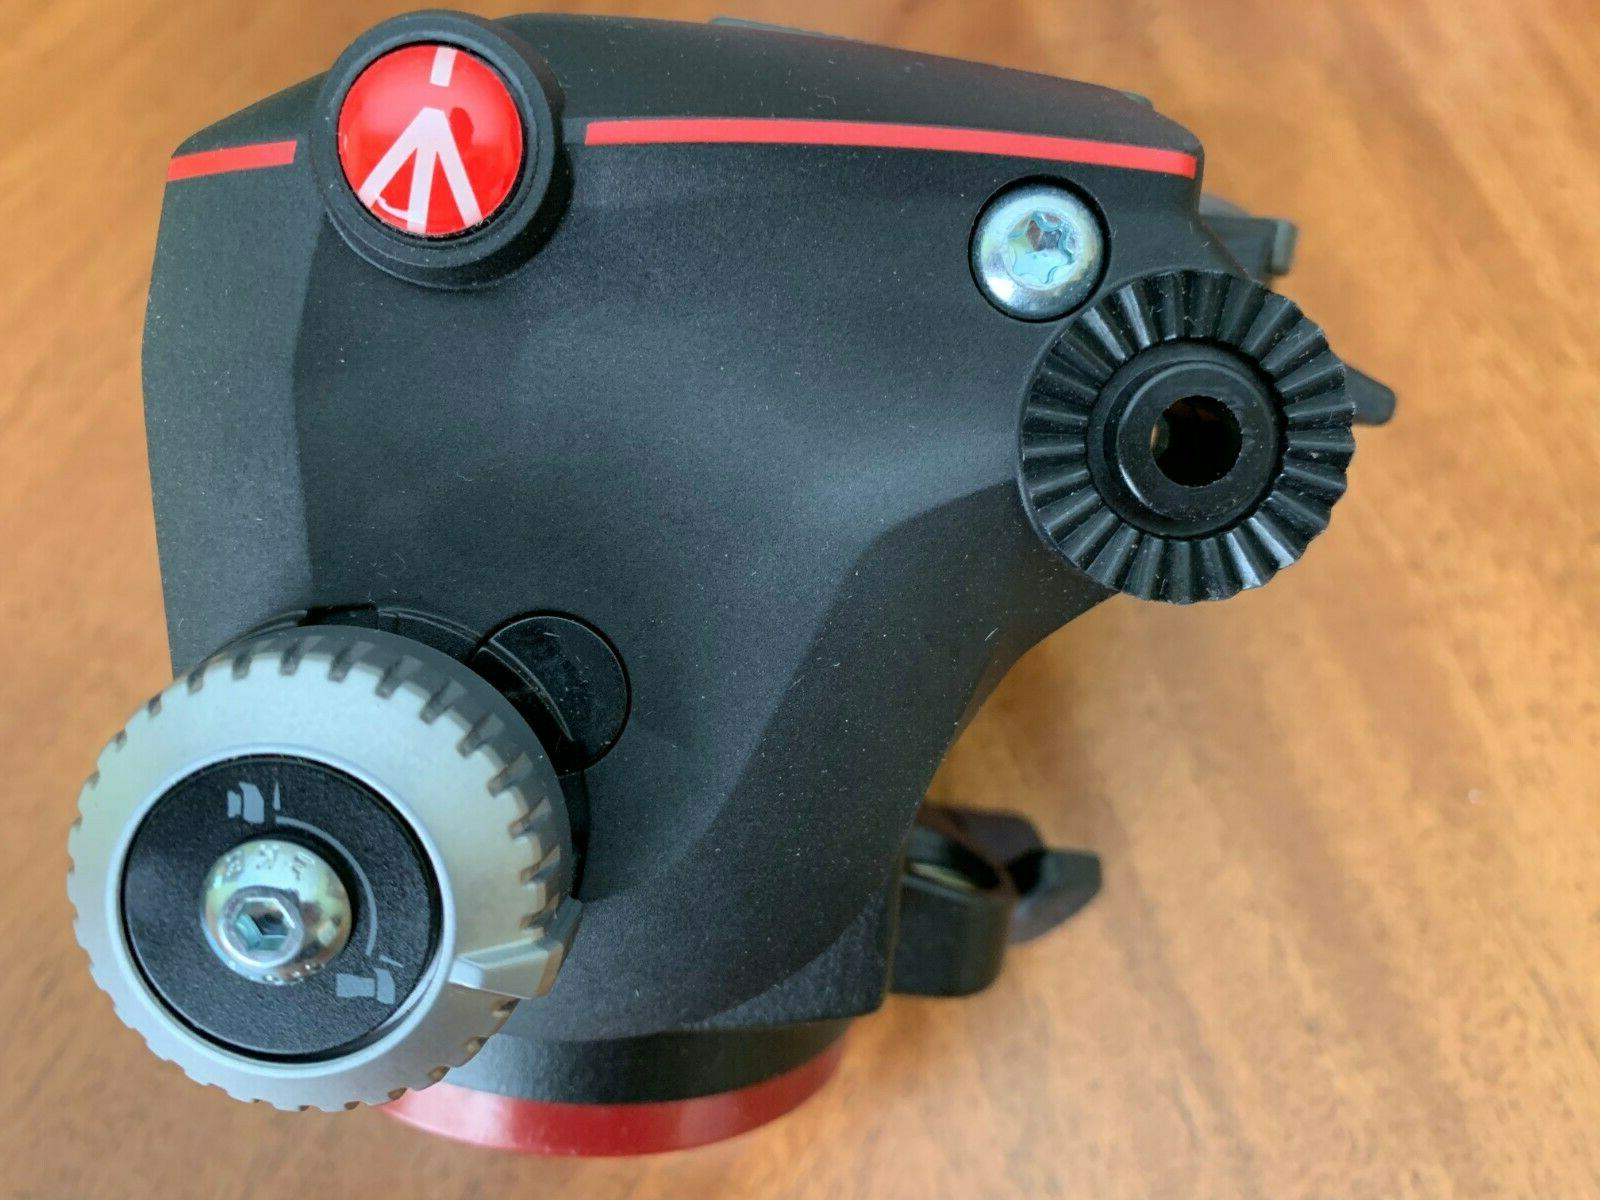 Manfrotto MHXPRO-2W XPRO HEAD with Plate